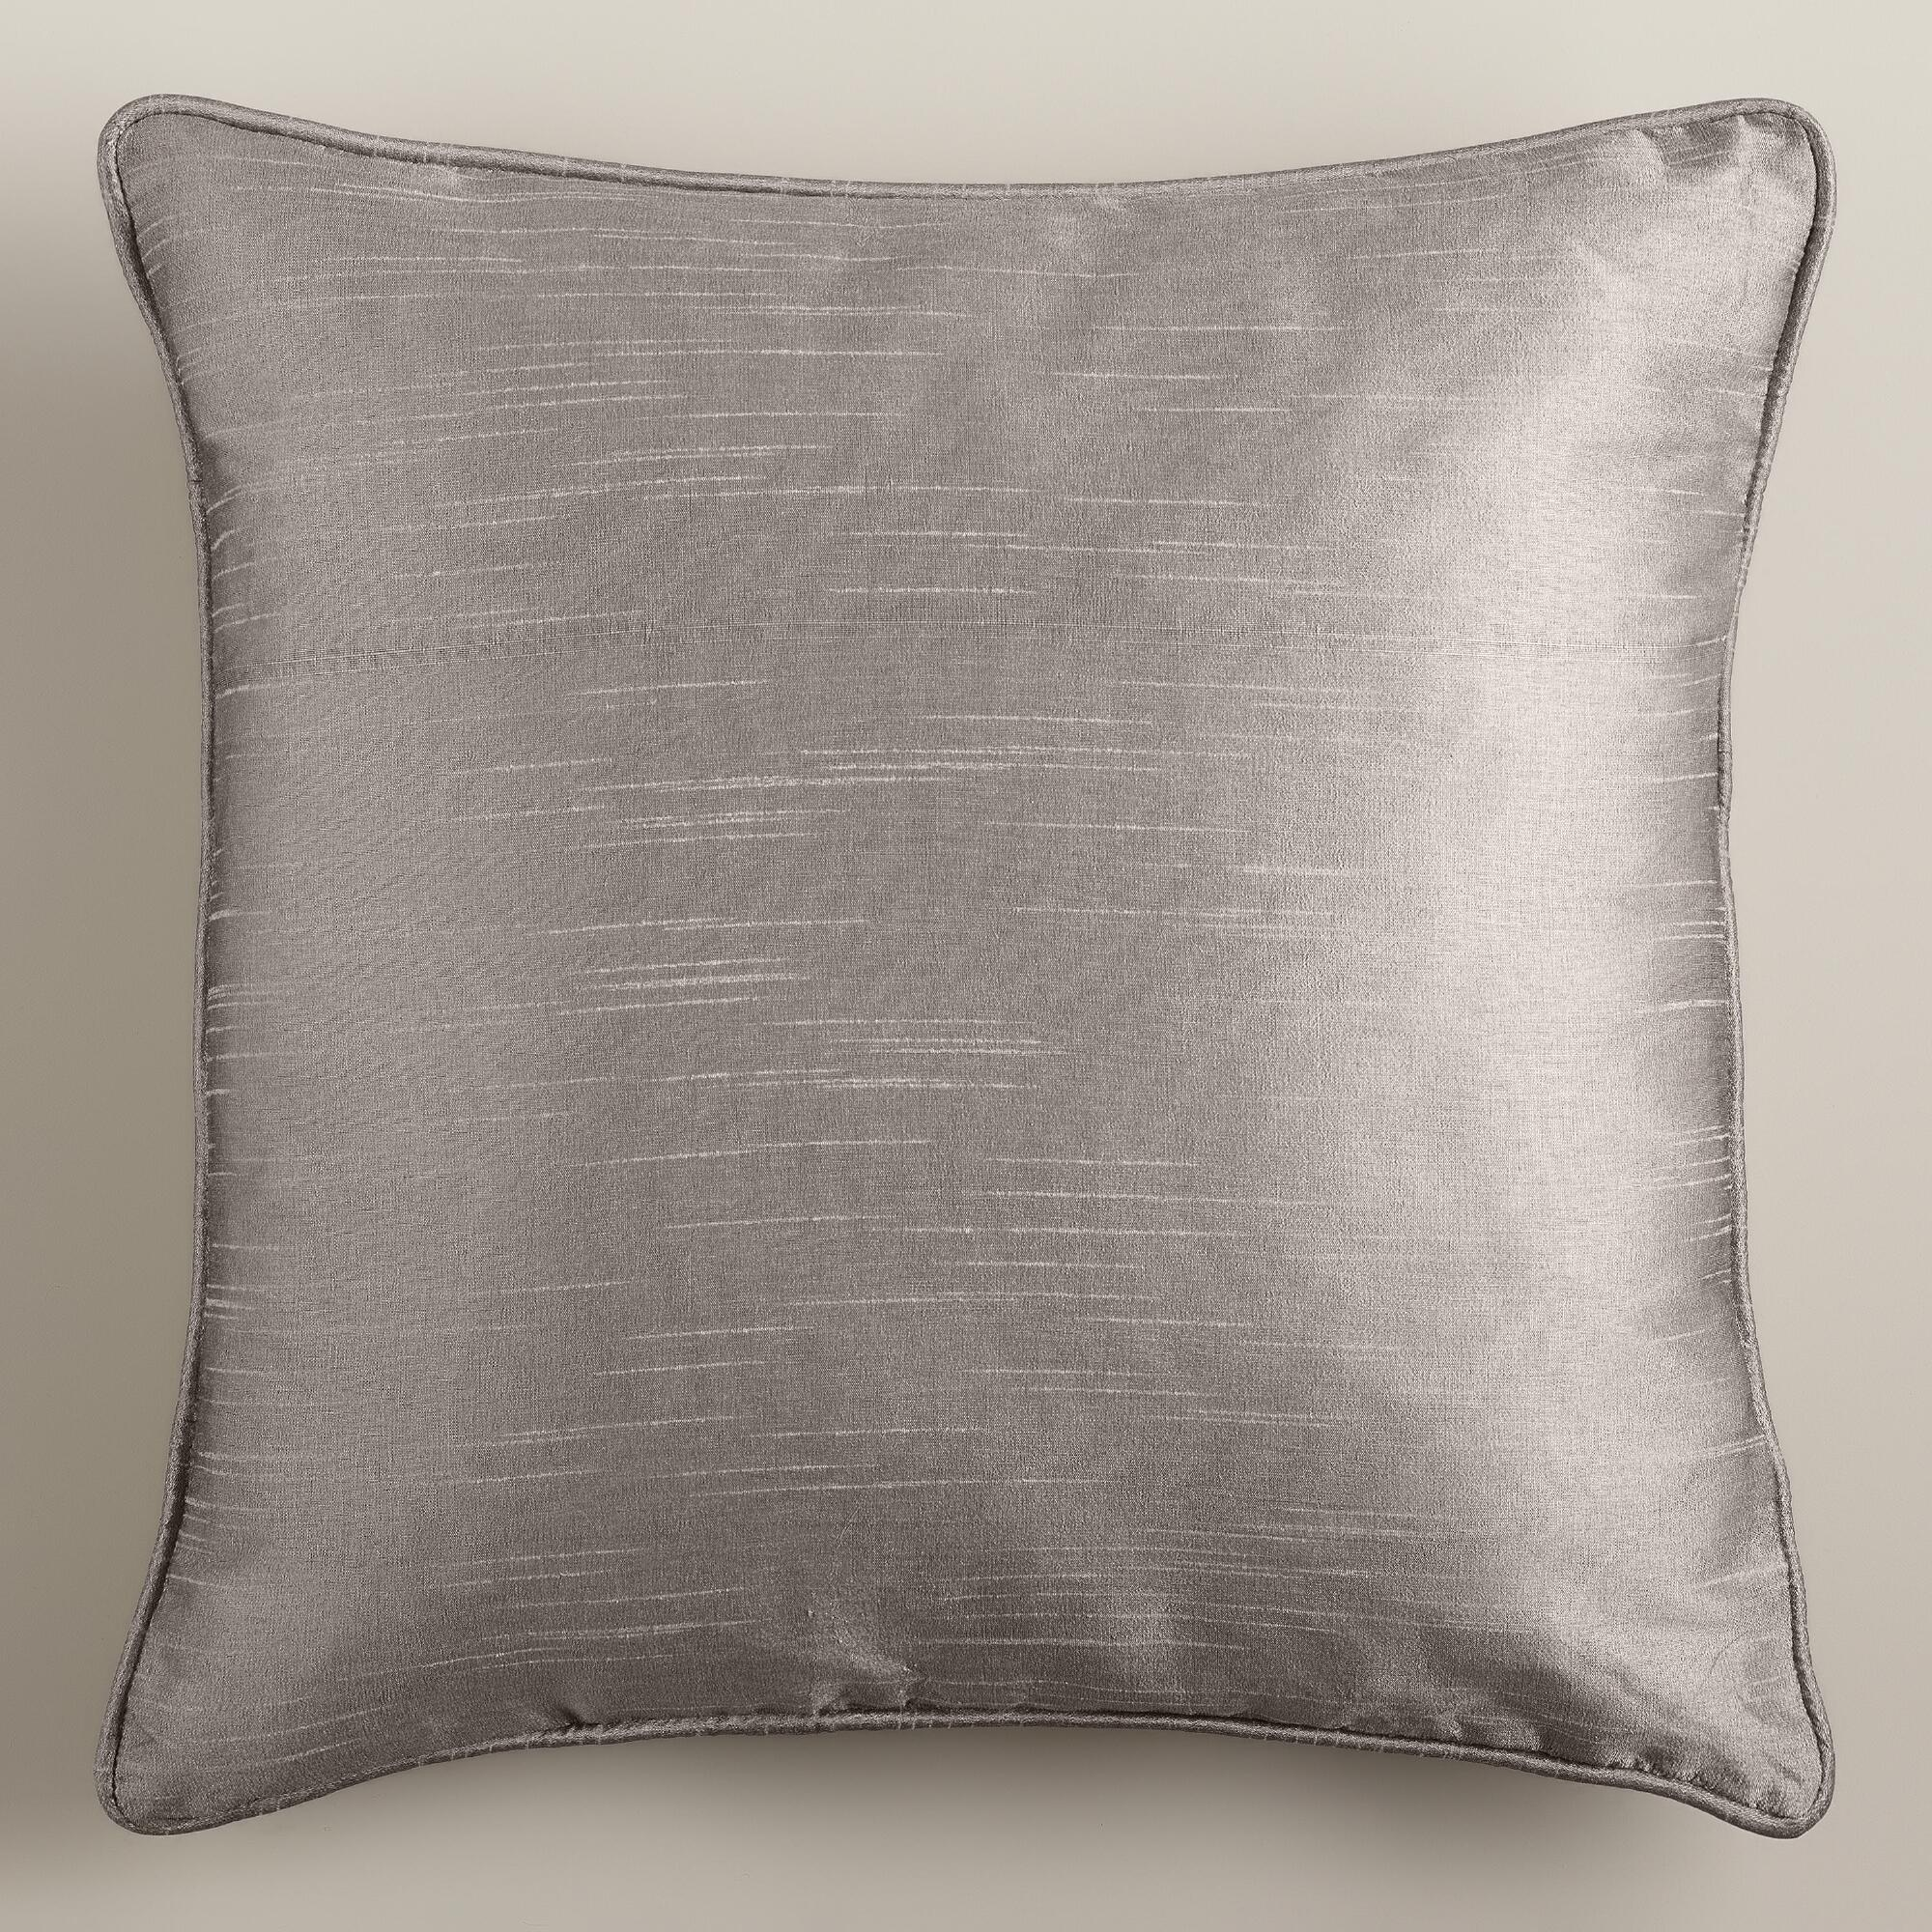 How To Make A Throw Pillow With Piping : Dupioni Throw Pillow with Piping World Market